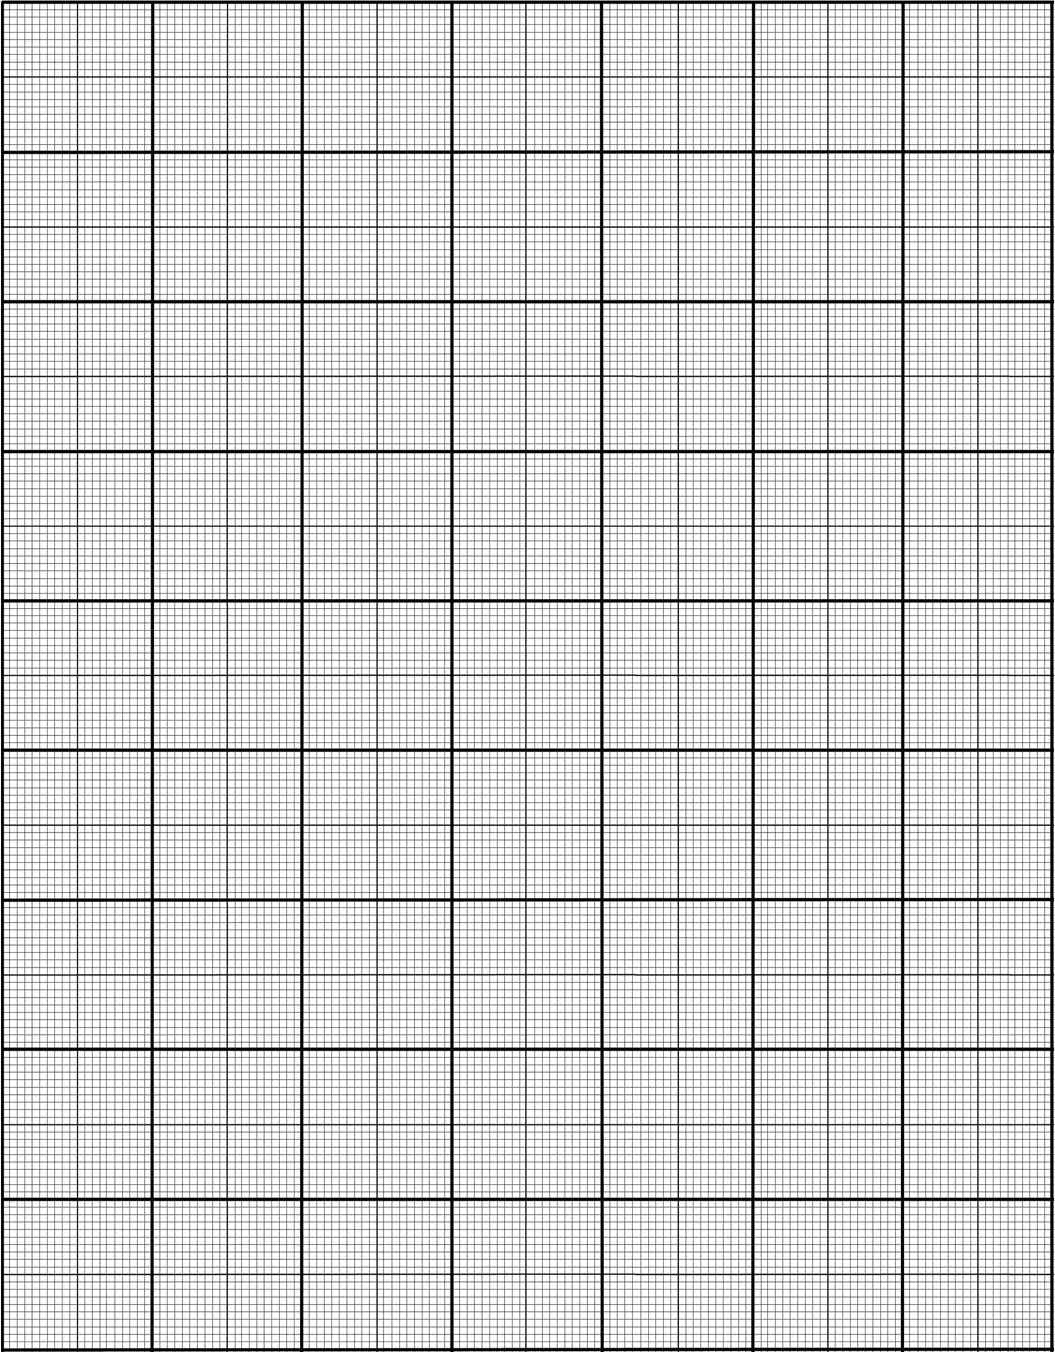 20 square per inch Graph Paper for Photographic Applications – Download Graph Paper for Word